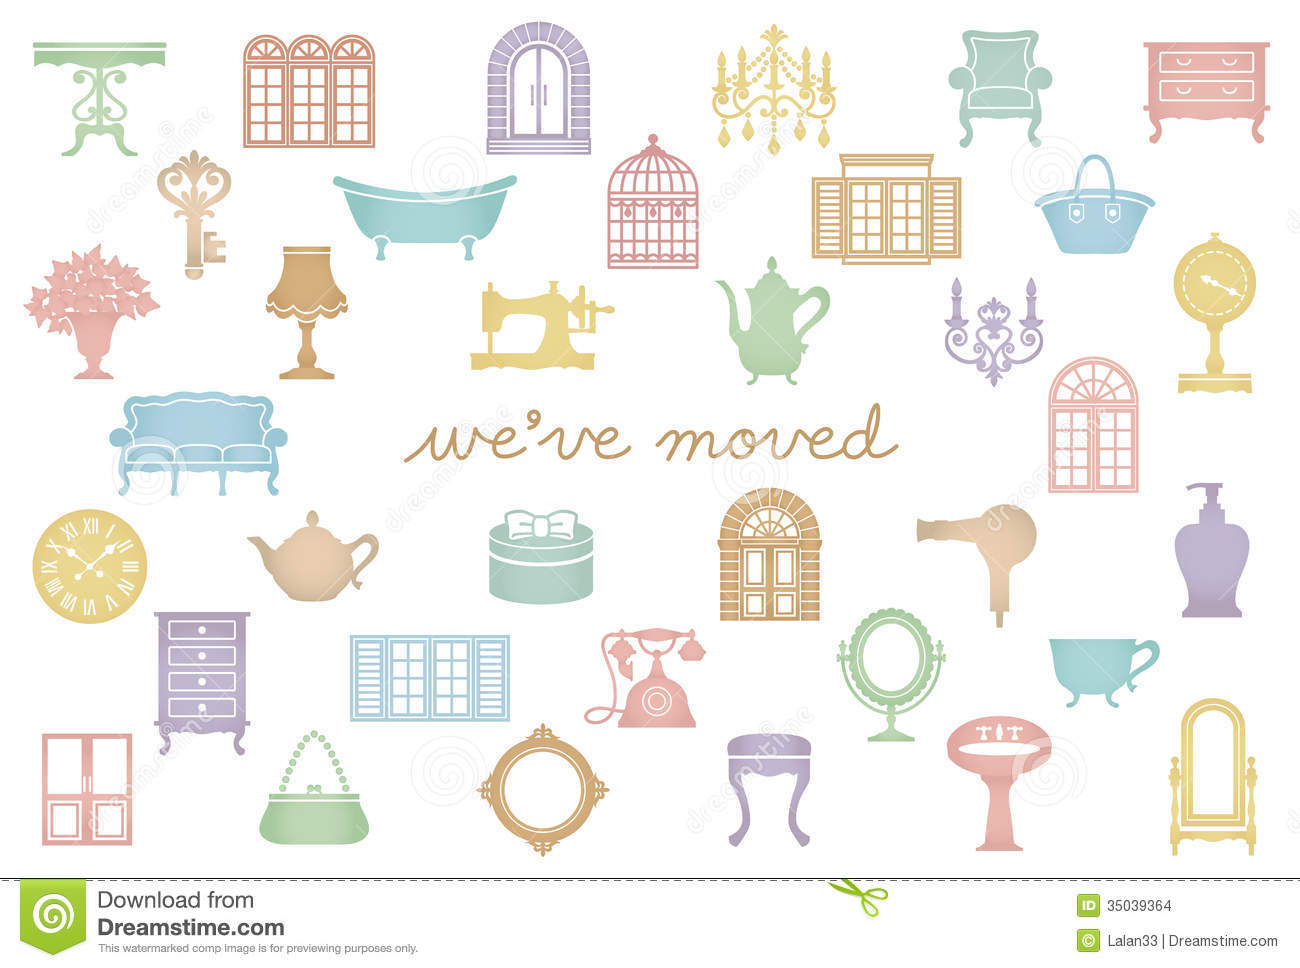 House Moving Greeting Card  We Ve Just Moved  Stock Images   Image